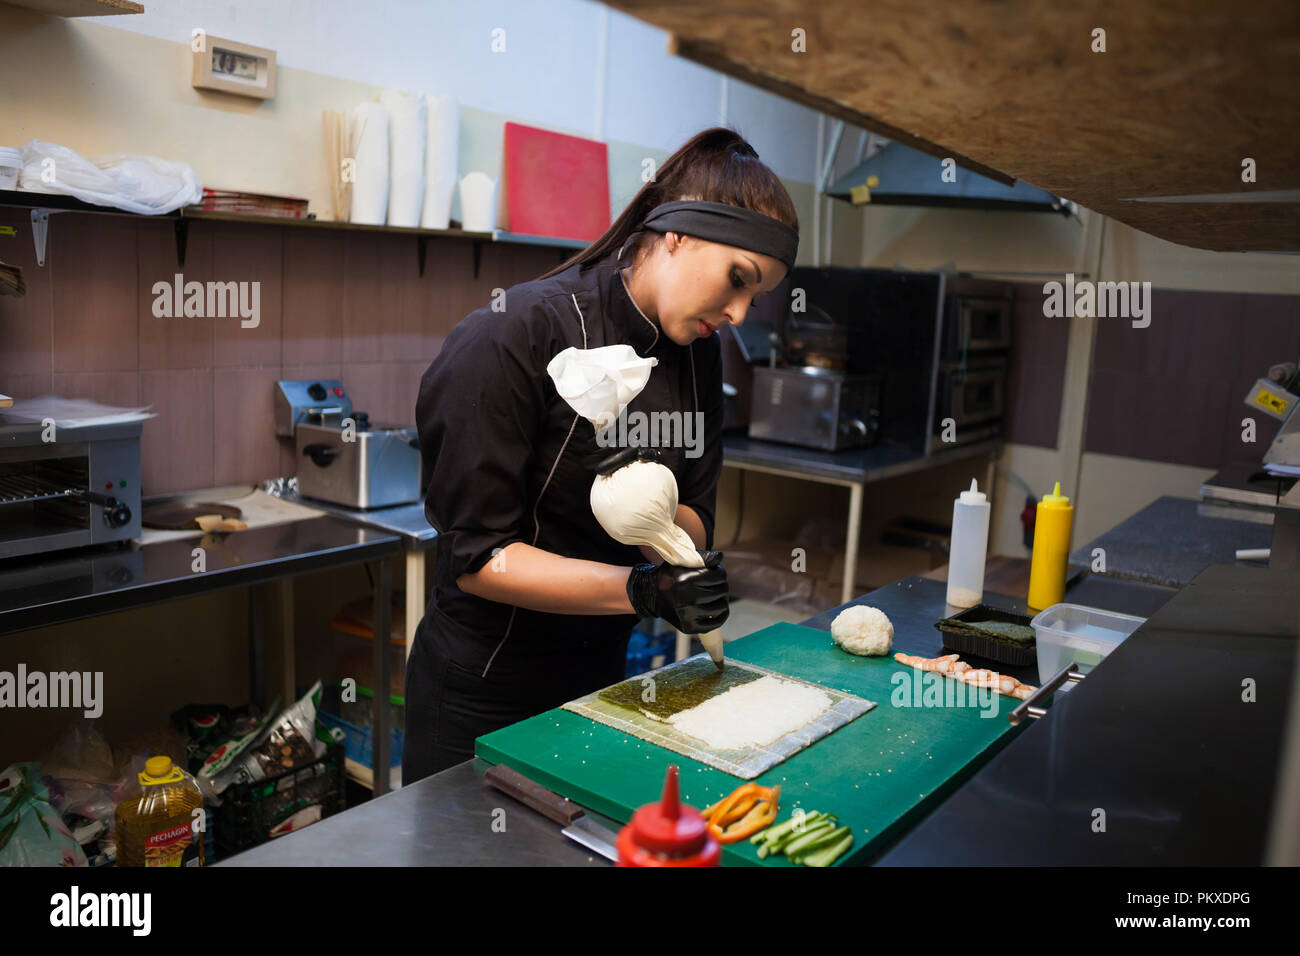 woman Cook prepares sushi on restaurant kitchen - Stock Image